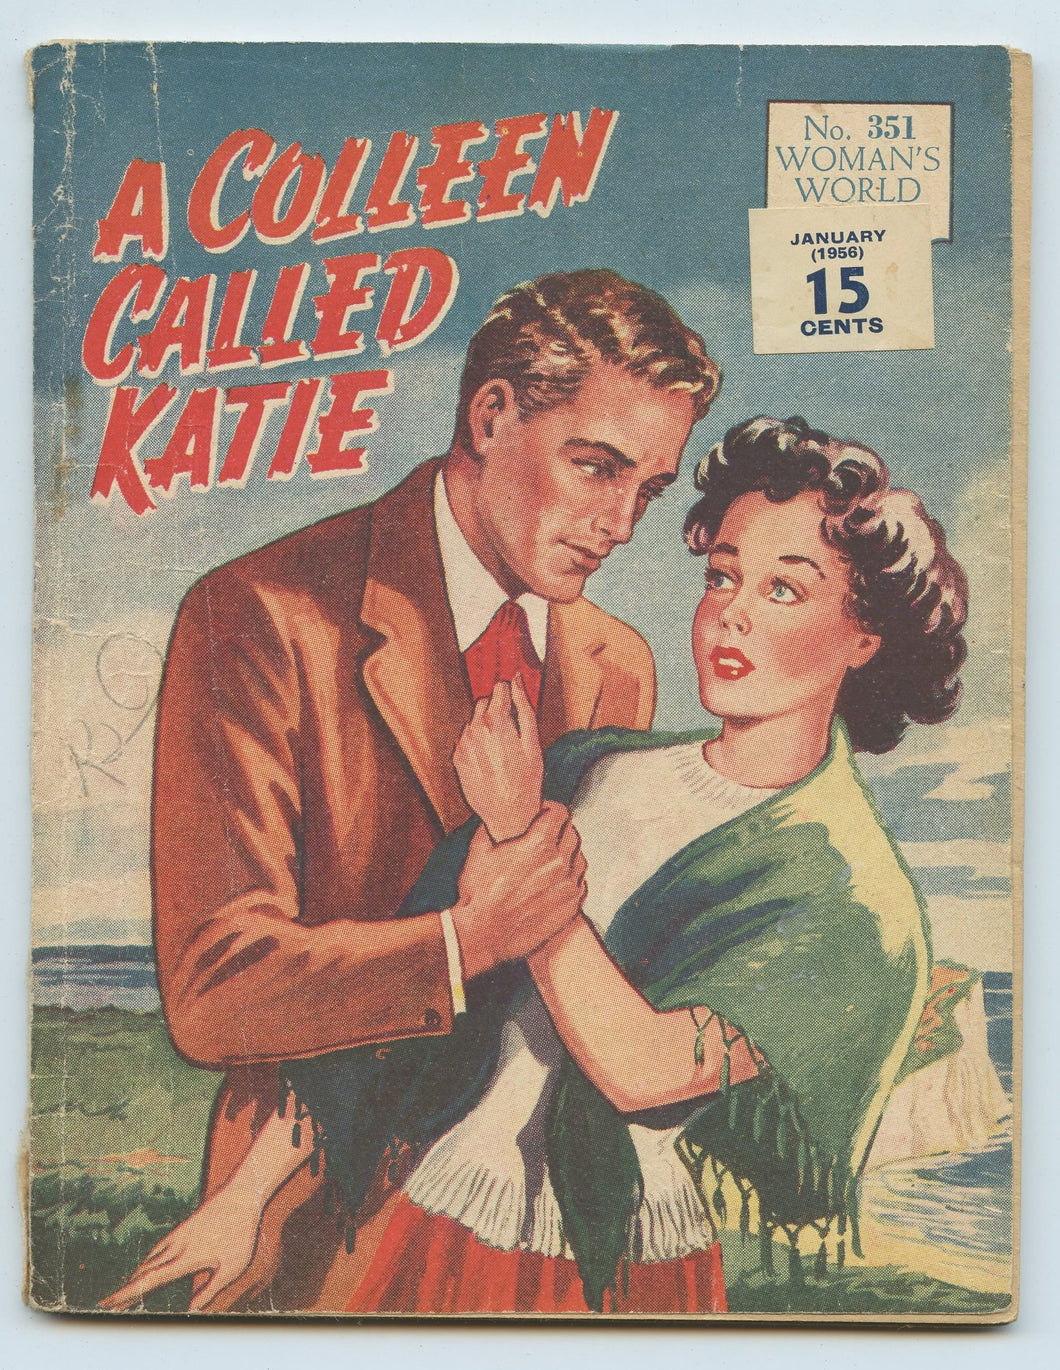 A Colleen Called Katie